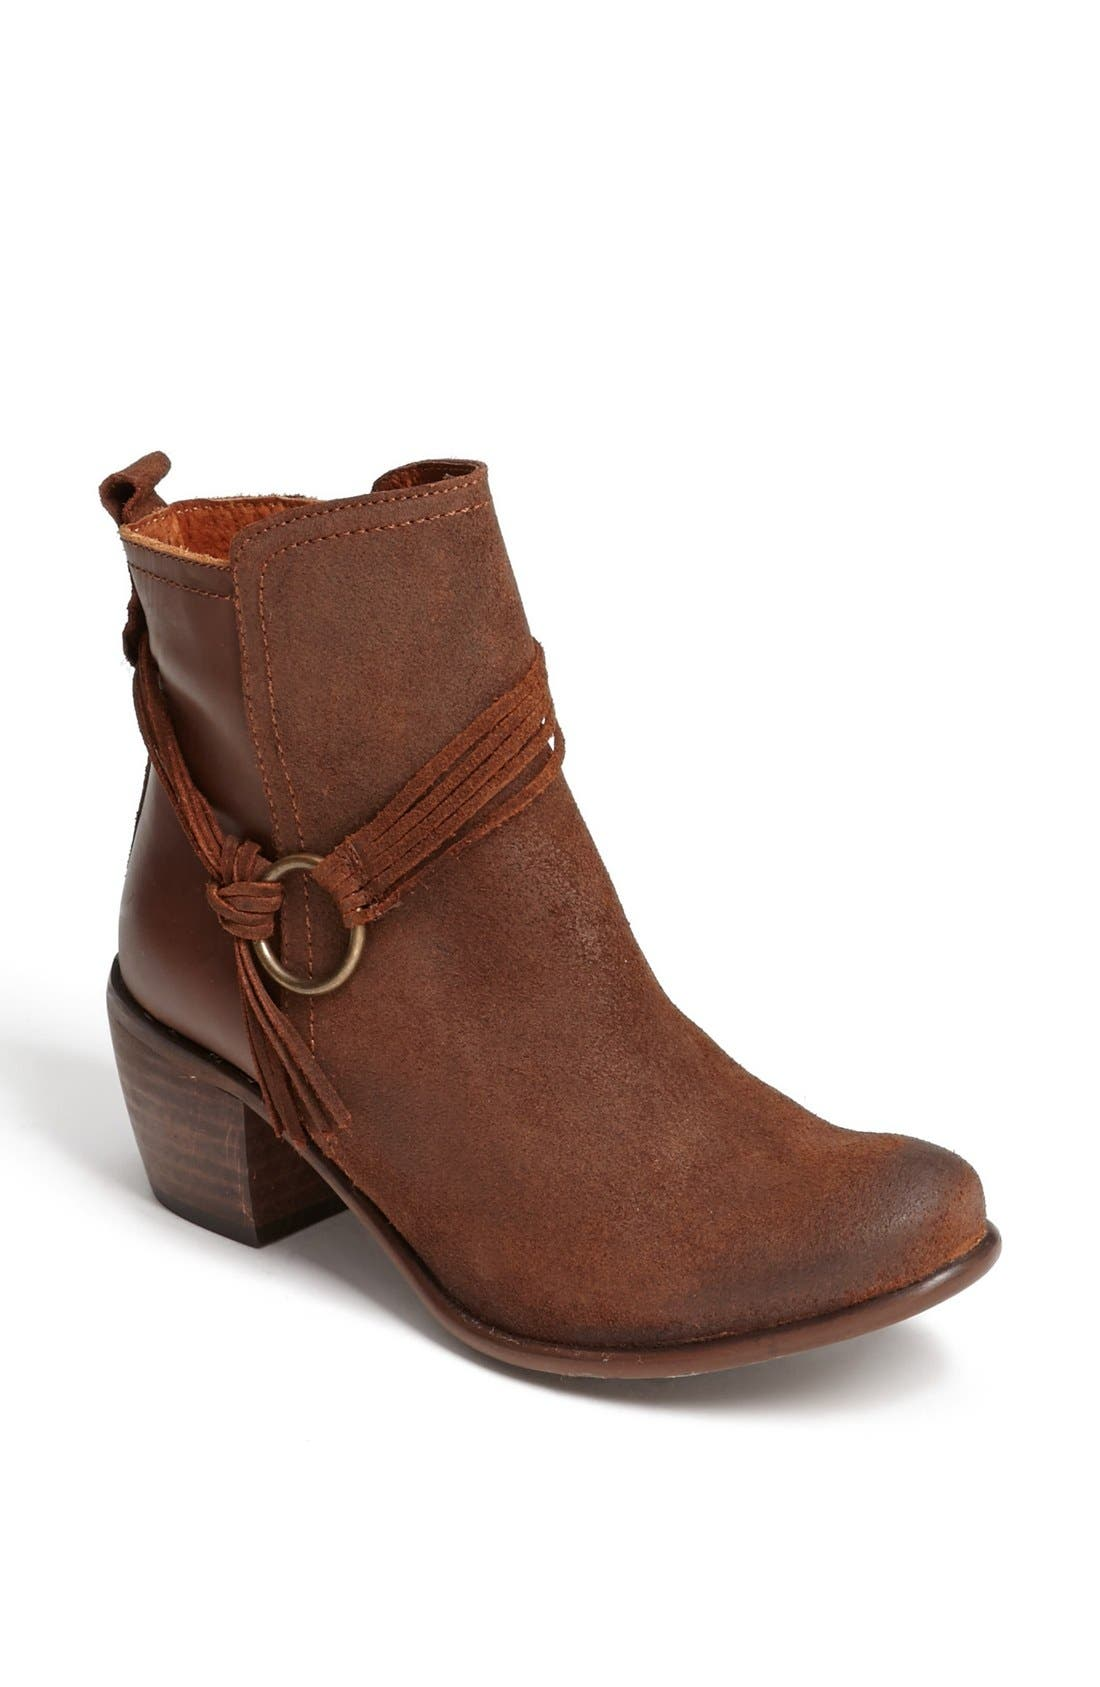 Main Image - SIXTYSEVEN 'Bailey' Bootie